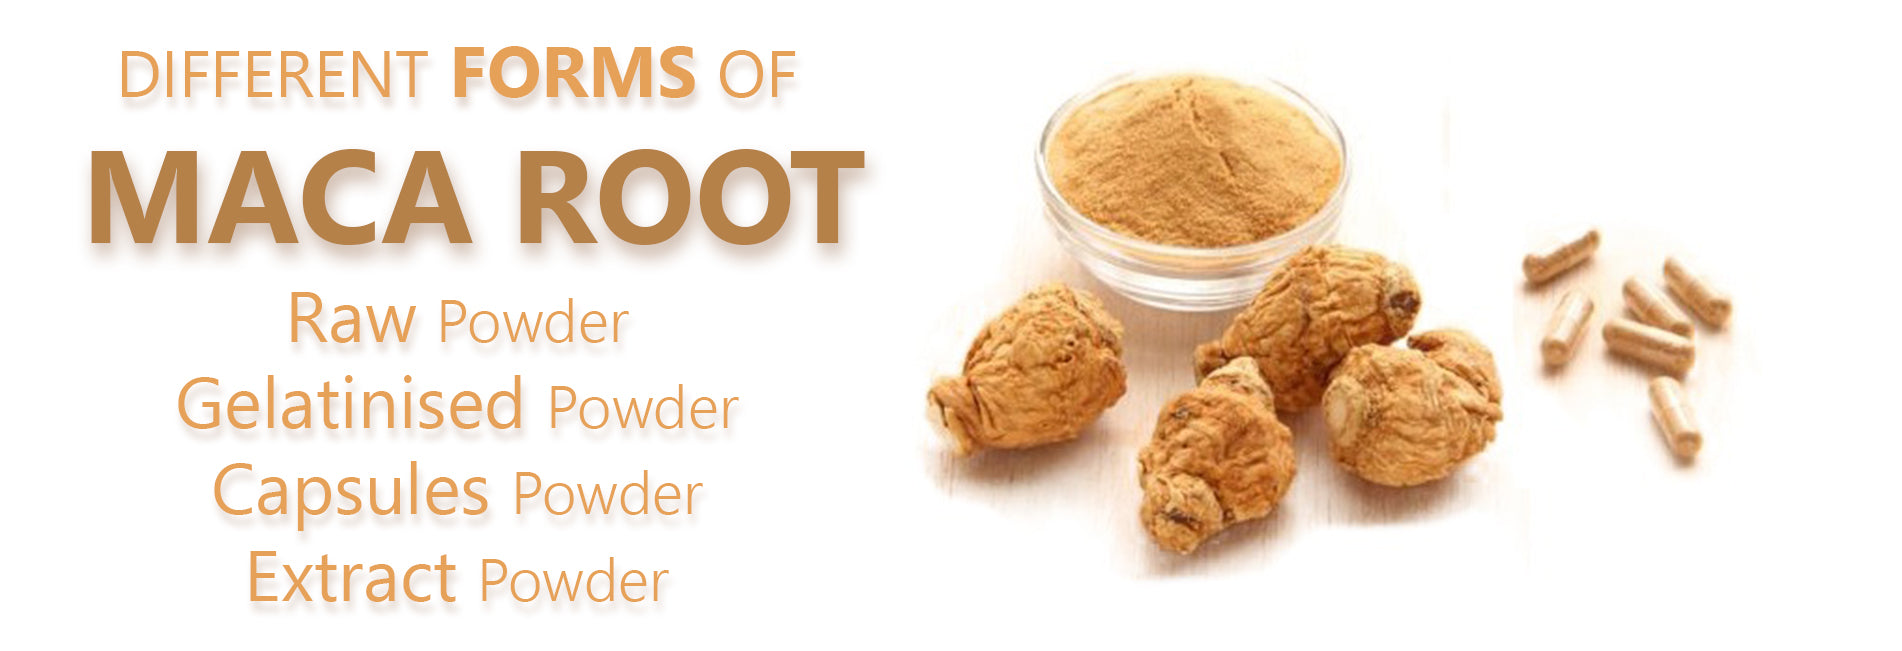 maca root powder capsule difference gelatinised extract what is best for consumption